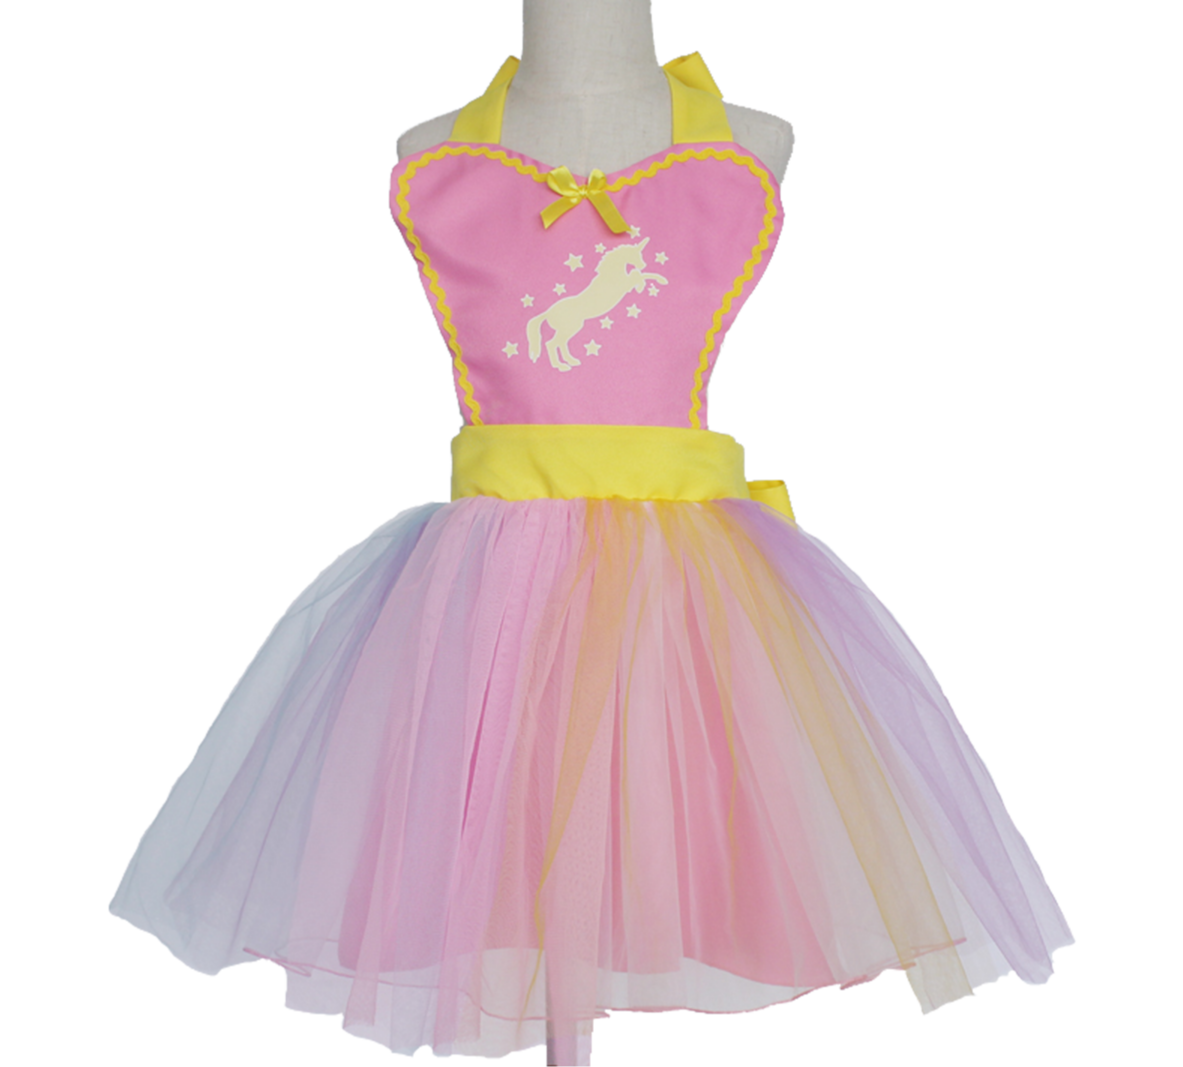 Unicorn Tutu Apron Dress - Pink 00050